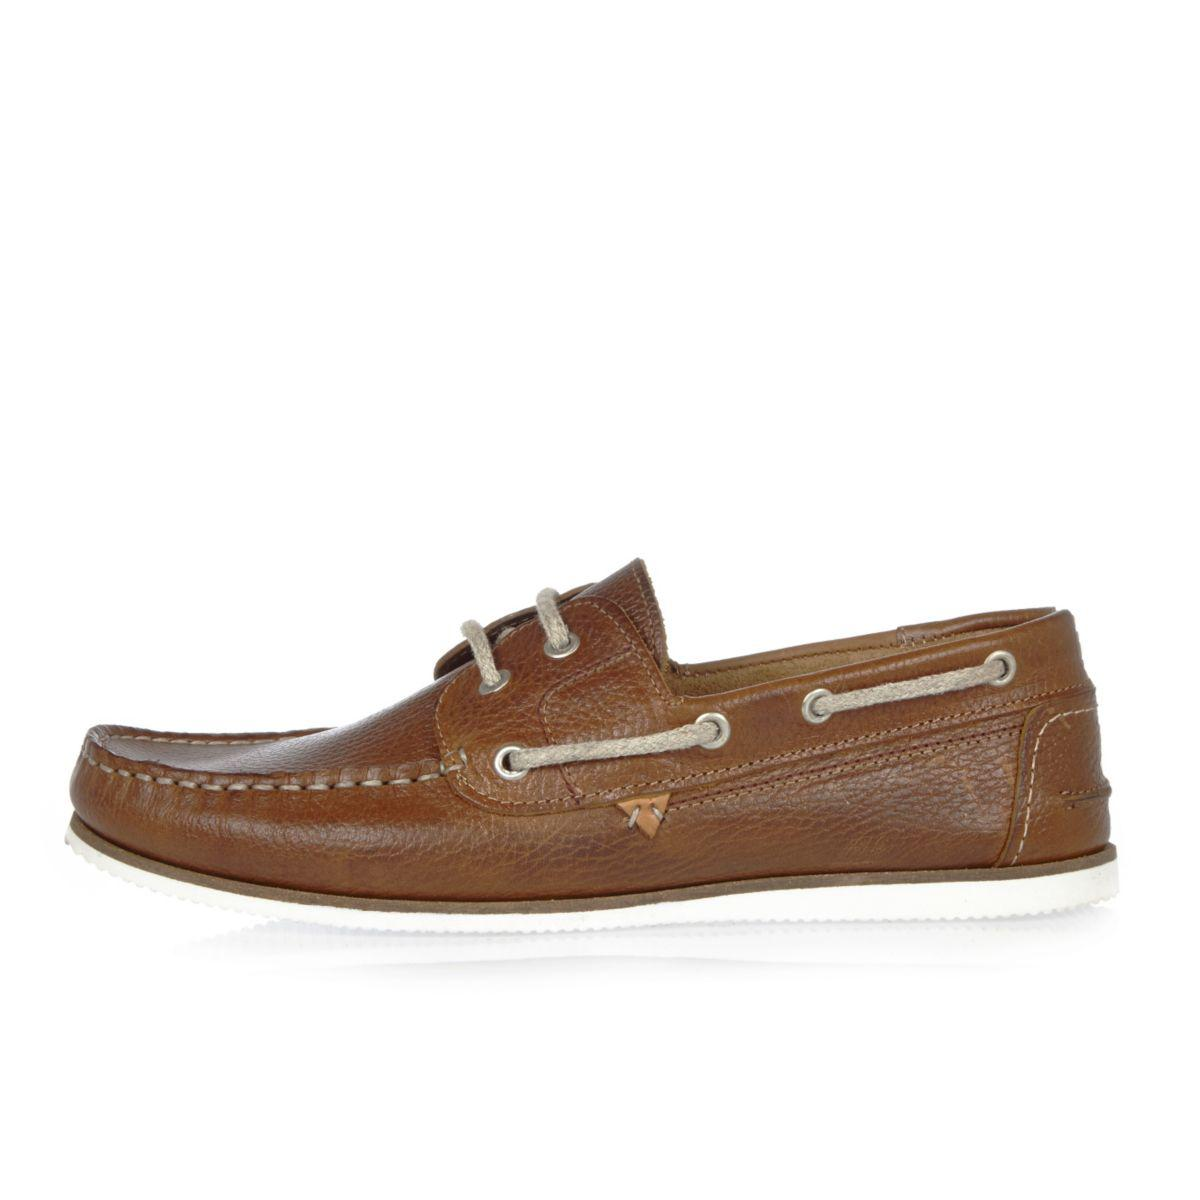 River Island Woven Boat Shoes In Leather